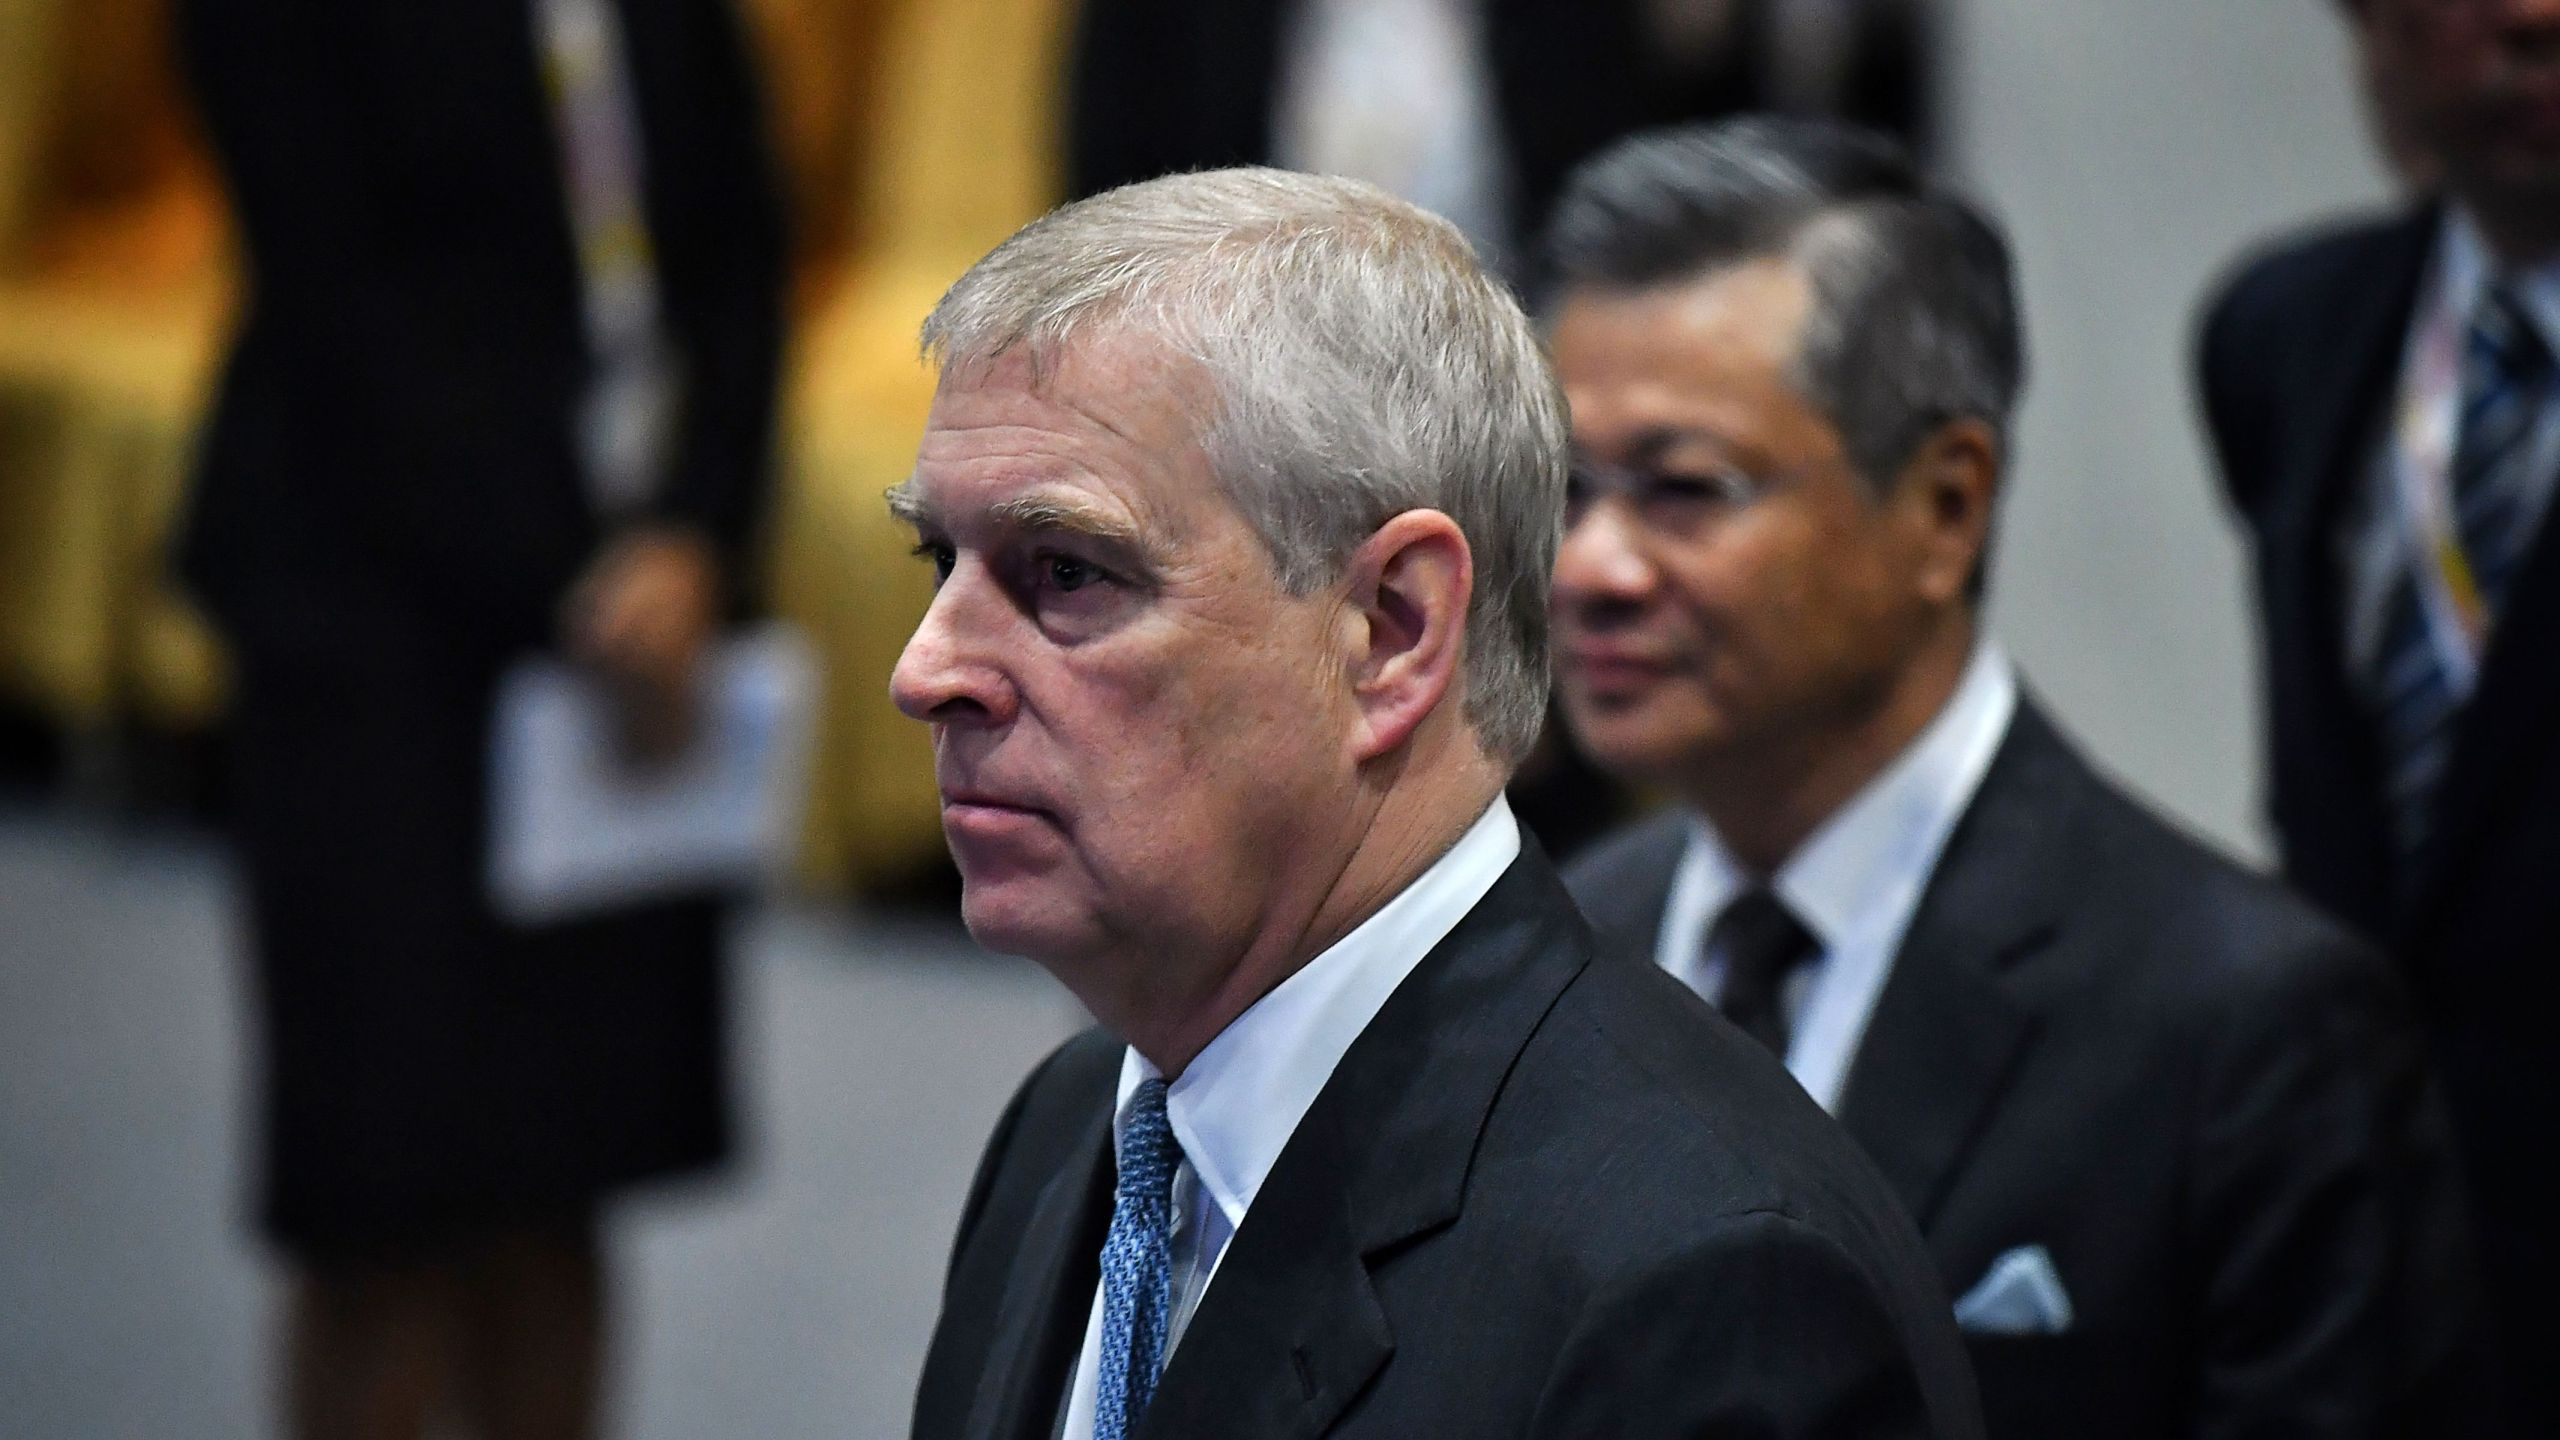 Prince Andrew To Step Back From Public Duties Amid Epstein